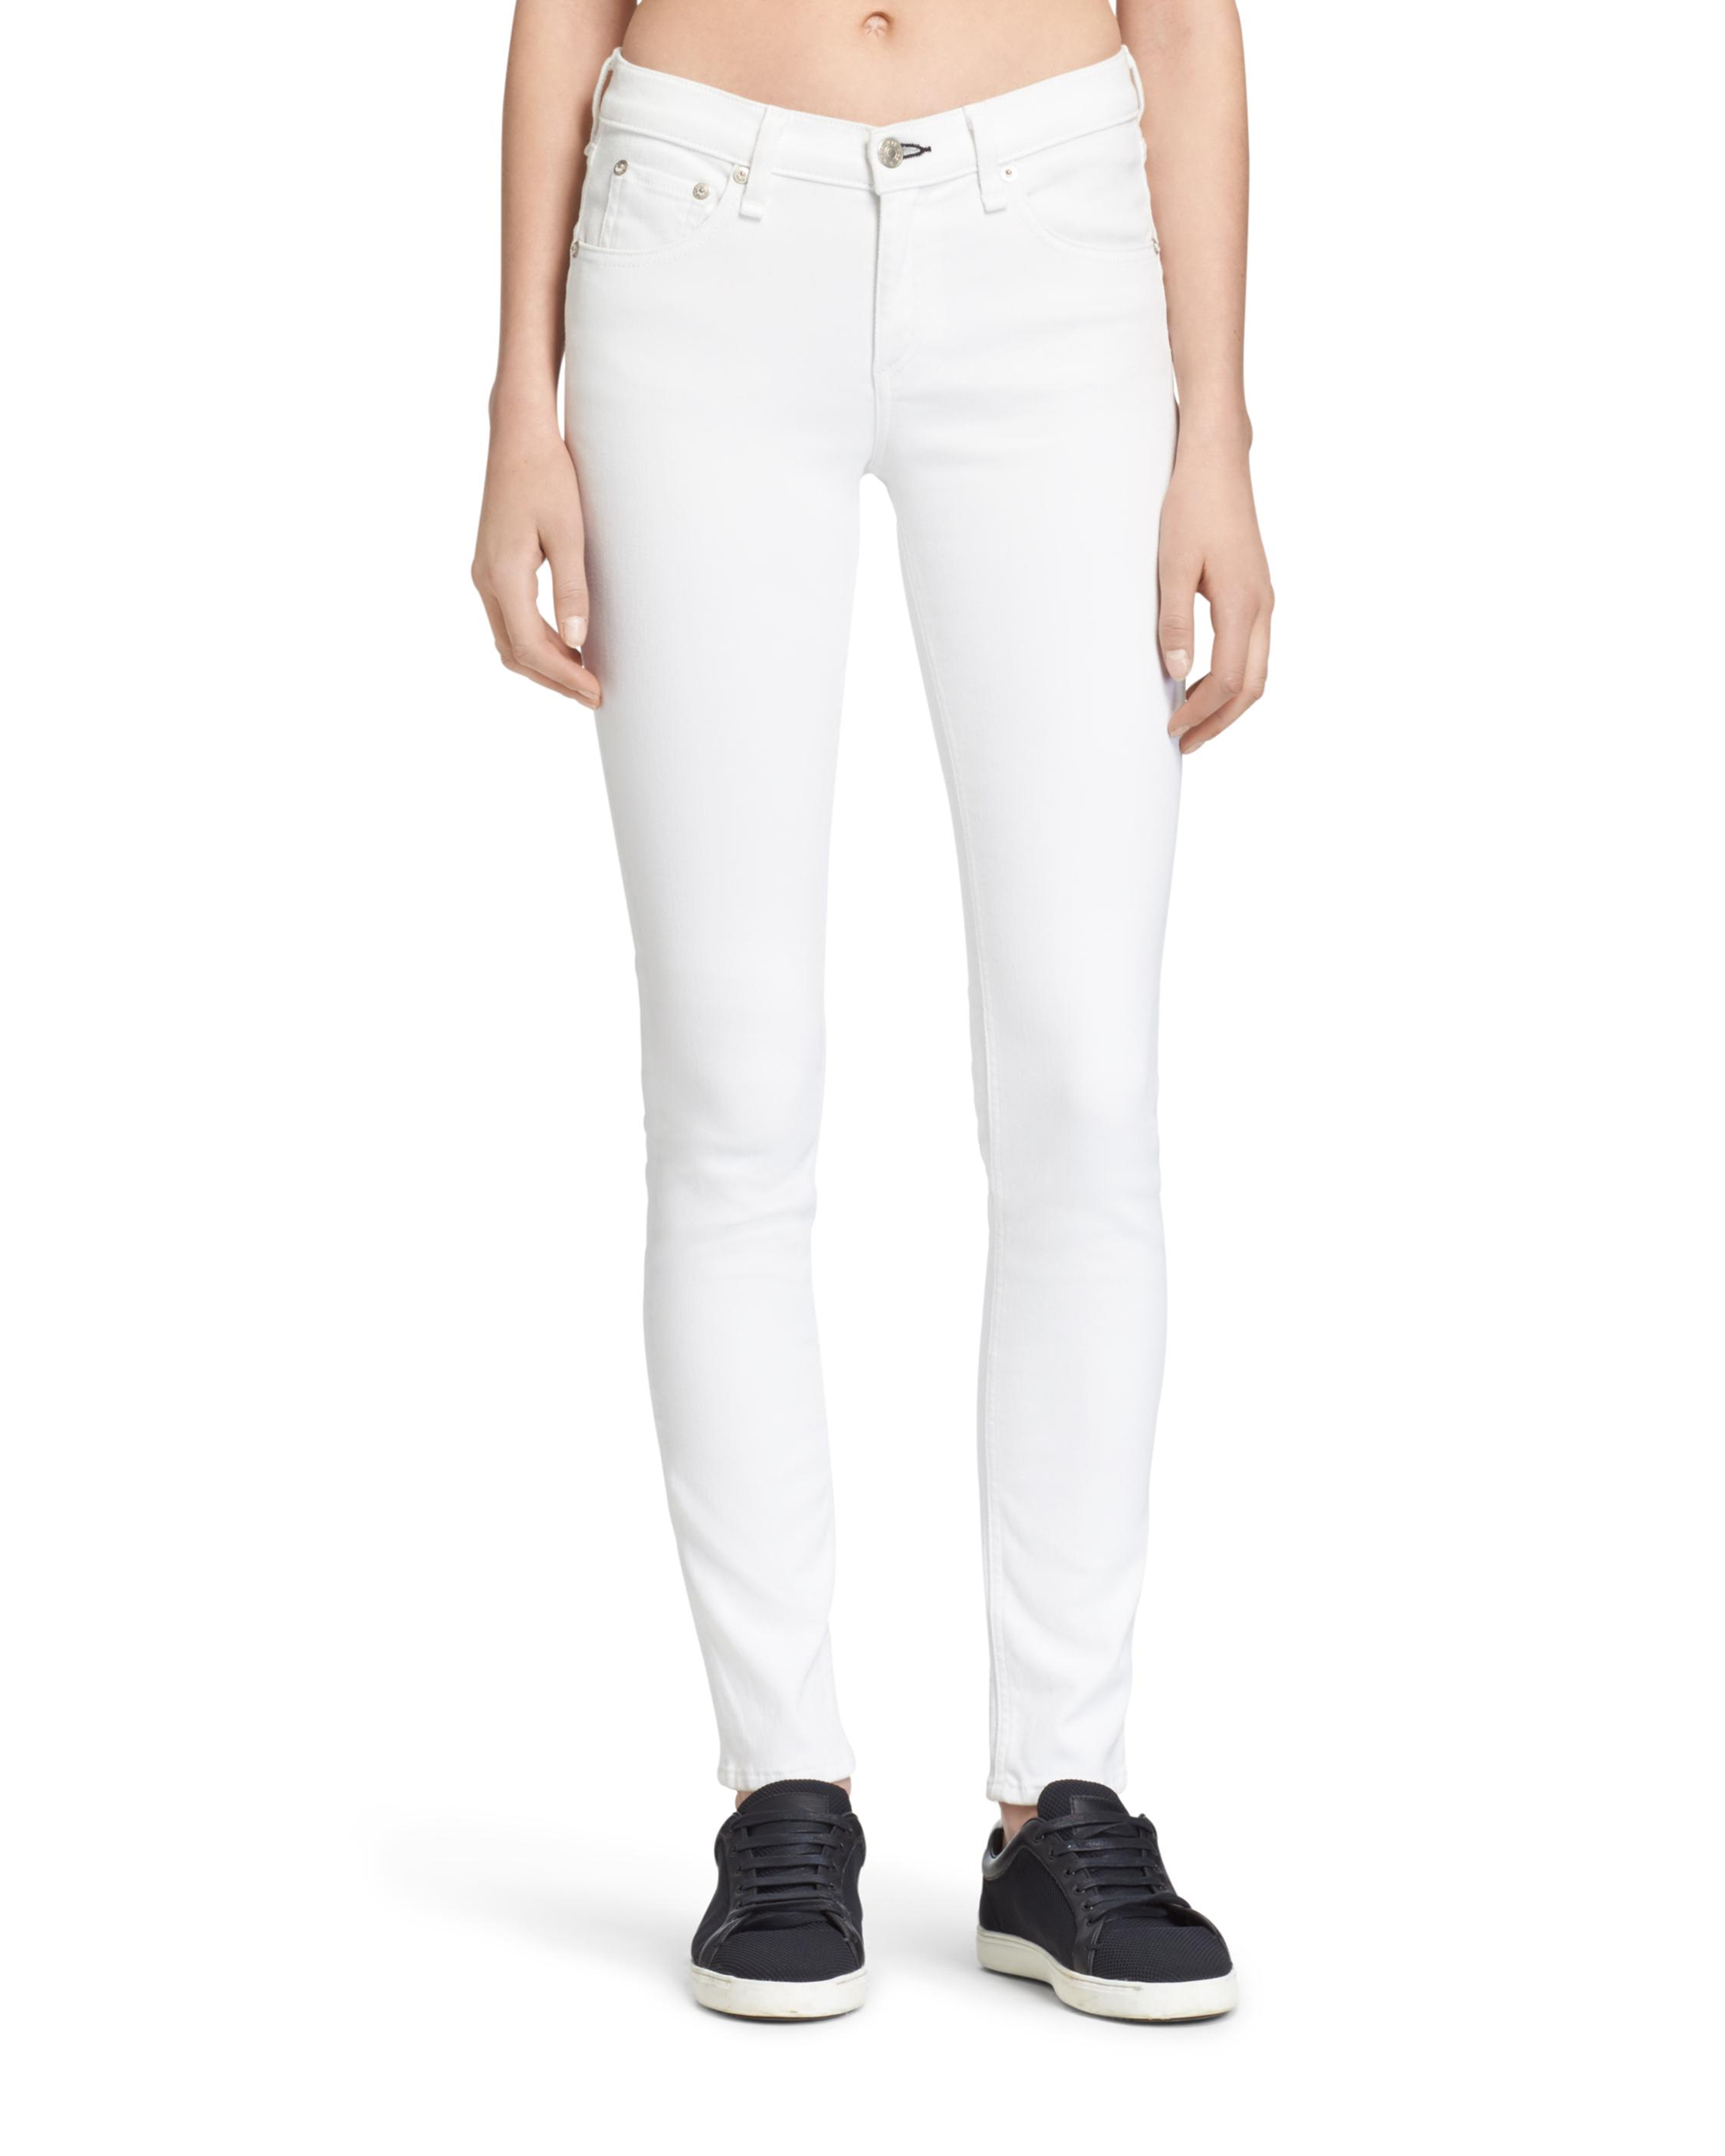 Outlet Store Online Rag & Bone Mid-Rise Skinny Sweatpants Clearance Store Cheap Online fqMWvMiZ